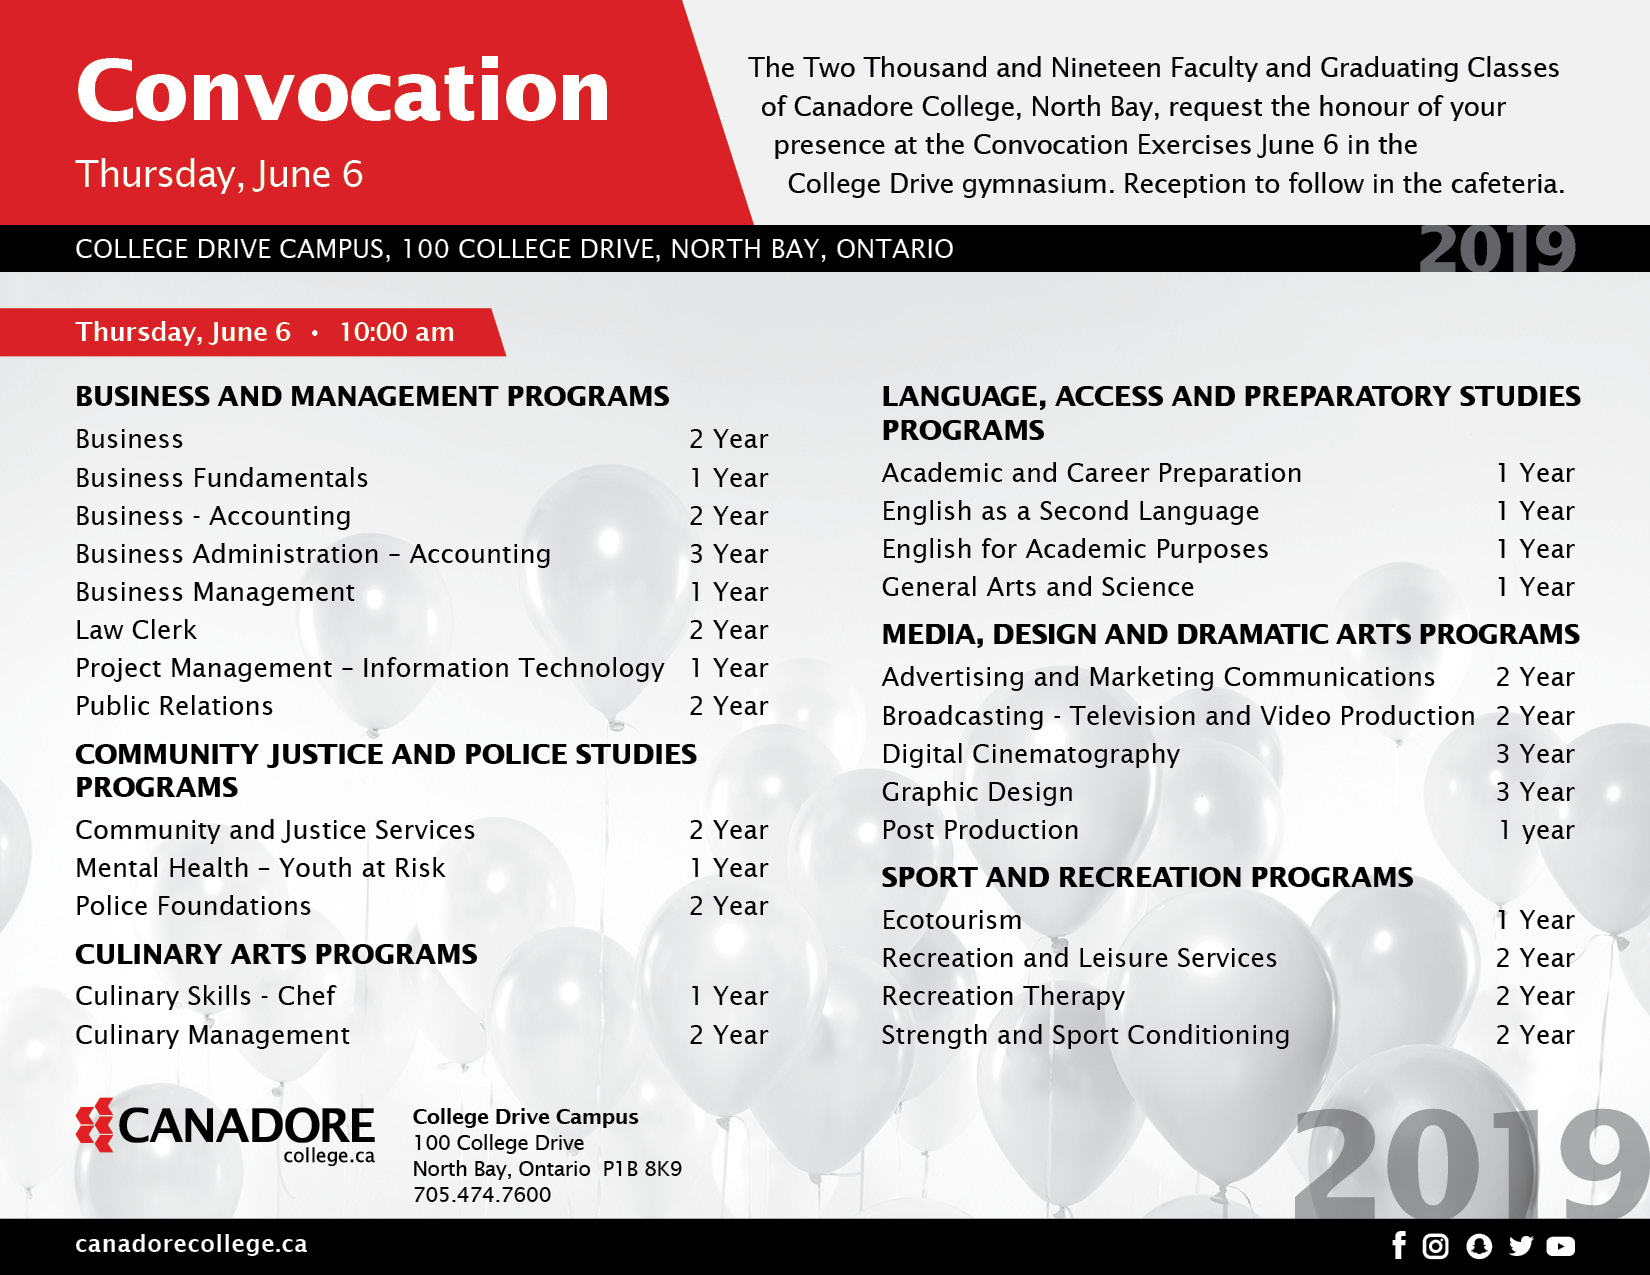 June 6th Convocation Invite